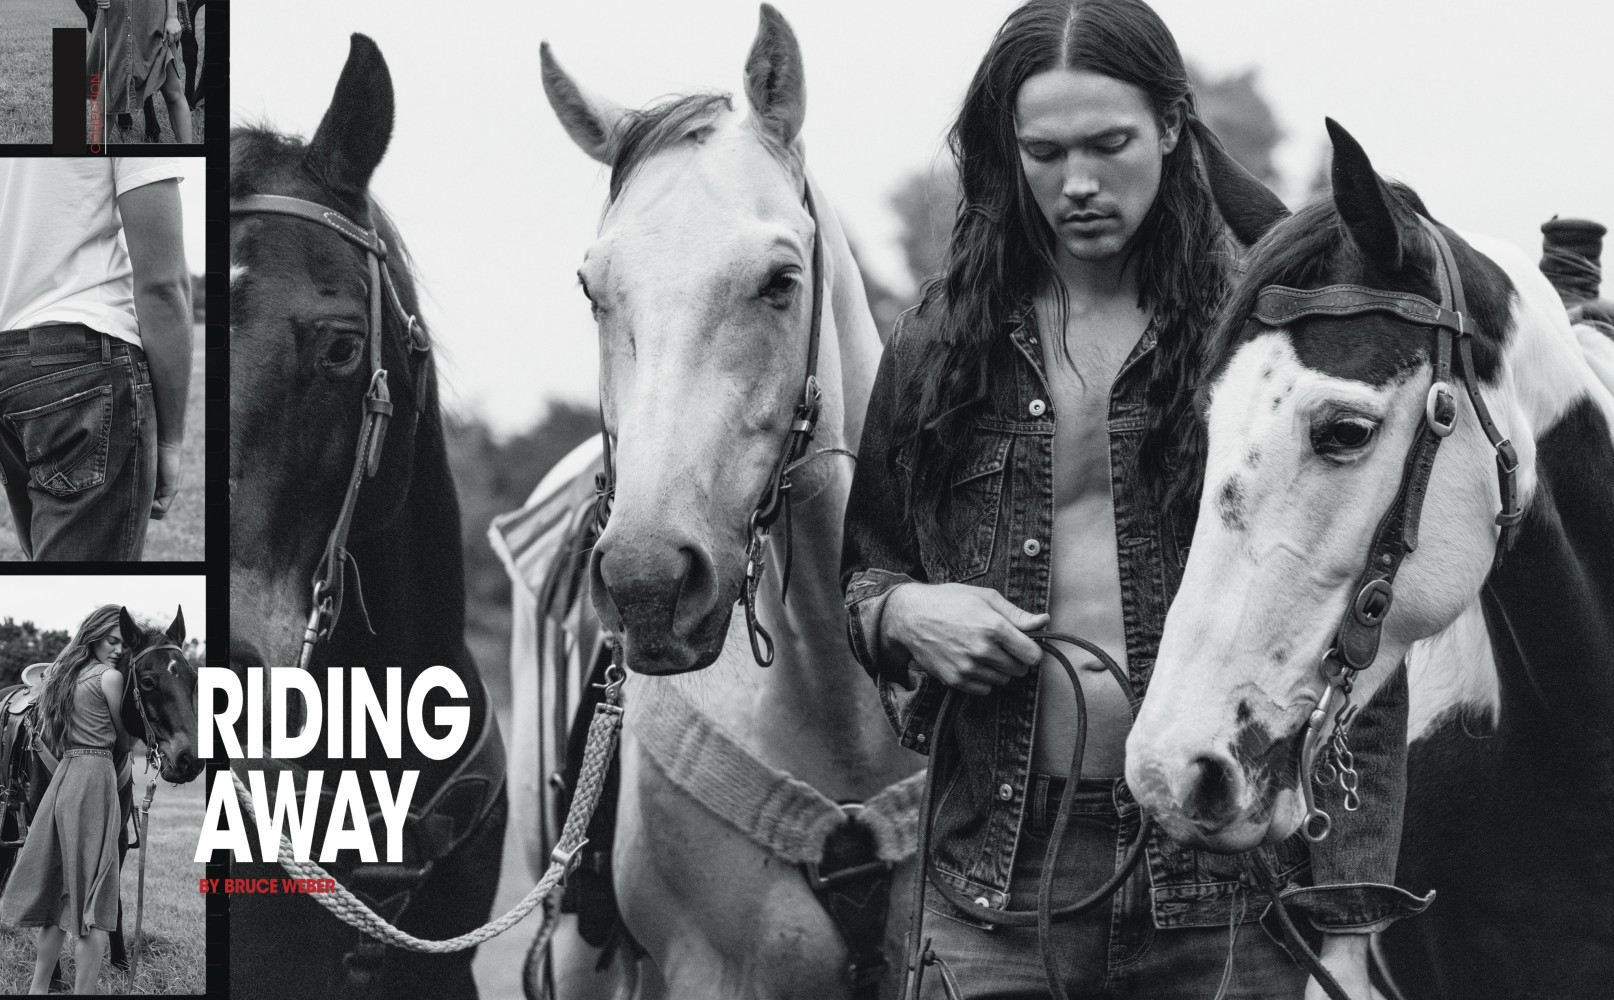 Our Handsome Matthew Sinnaeve for Icon Magazine Photographed by Bruce Weber